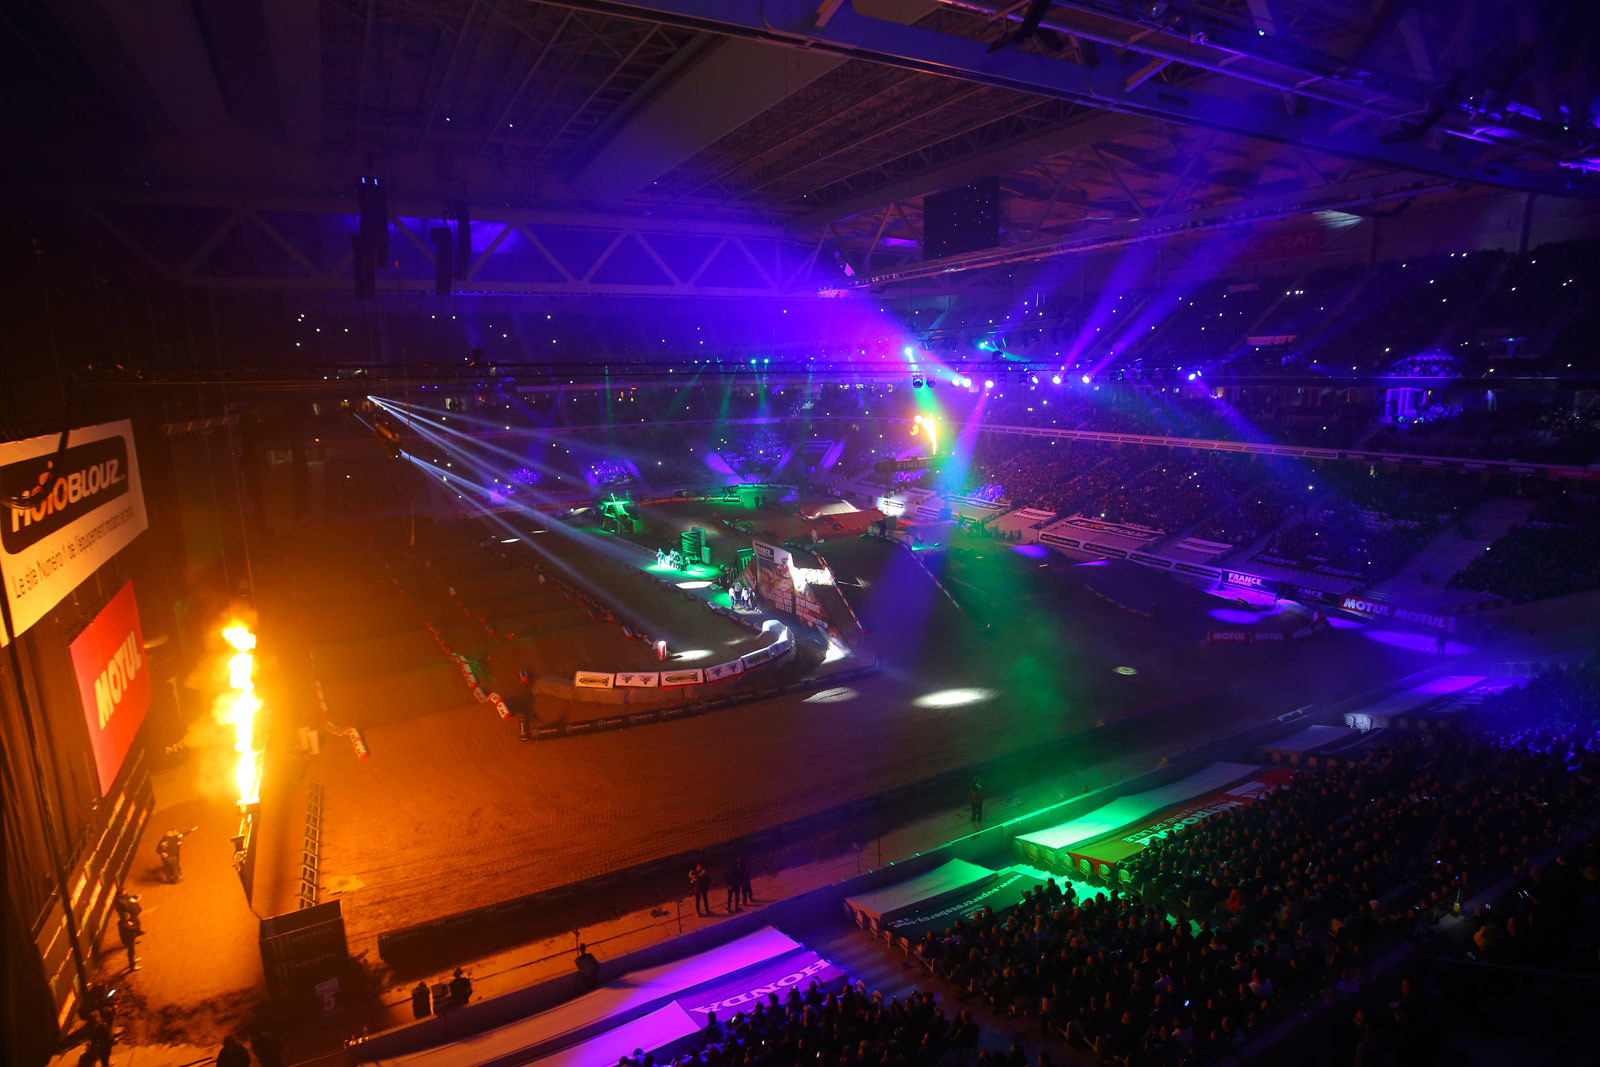 Supercross Paris-Lille - Photo Blast: Paris-Lille Supercross - Motocross Pictures - Vital MX